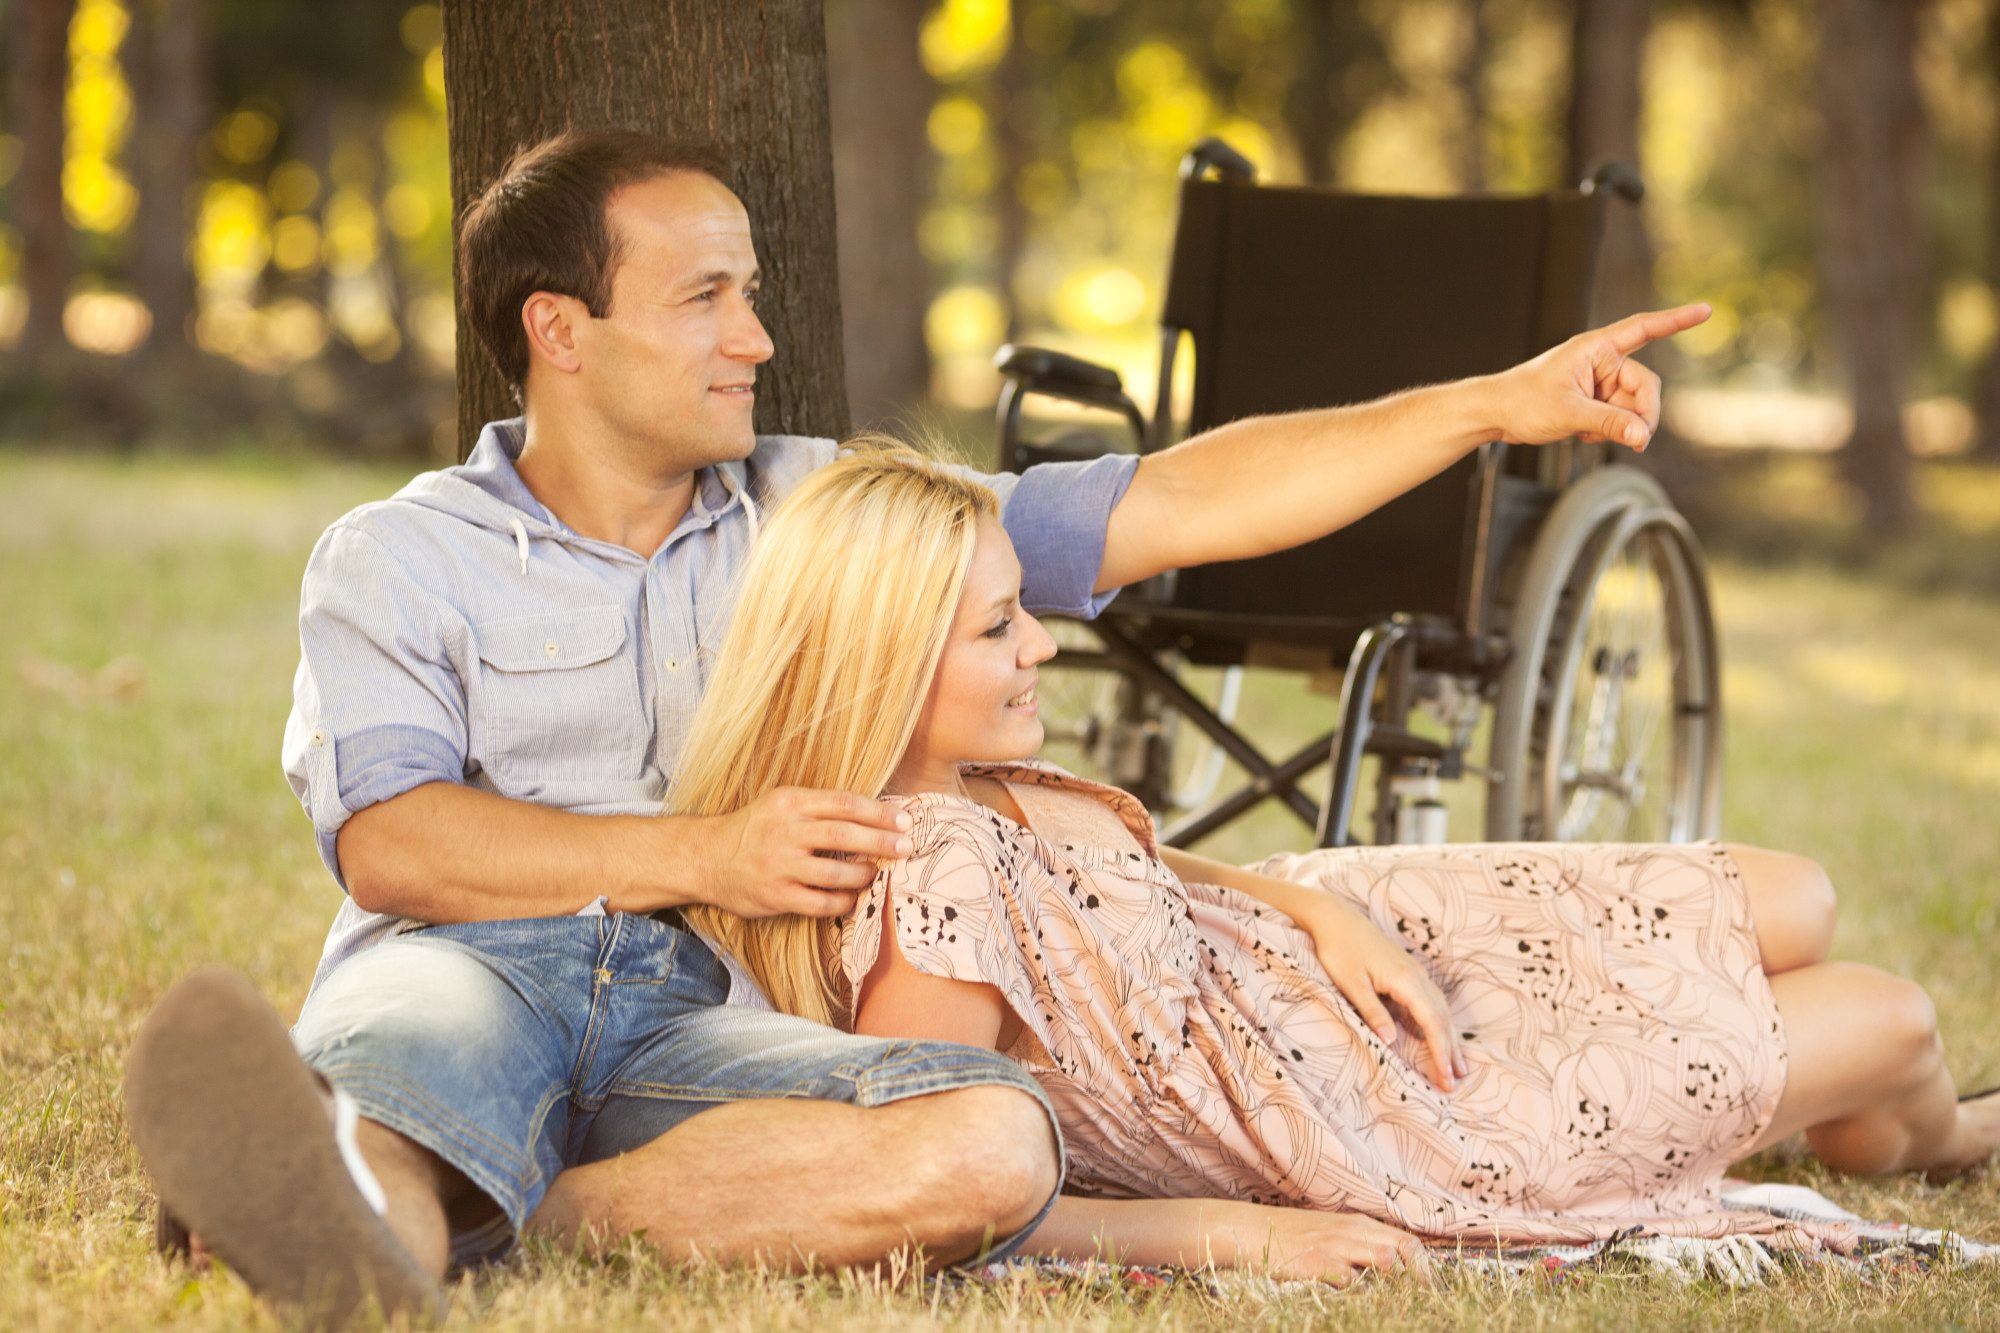 dating dating for handicappede